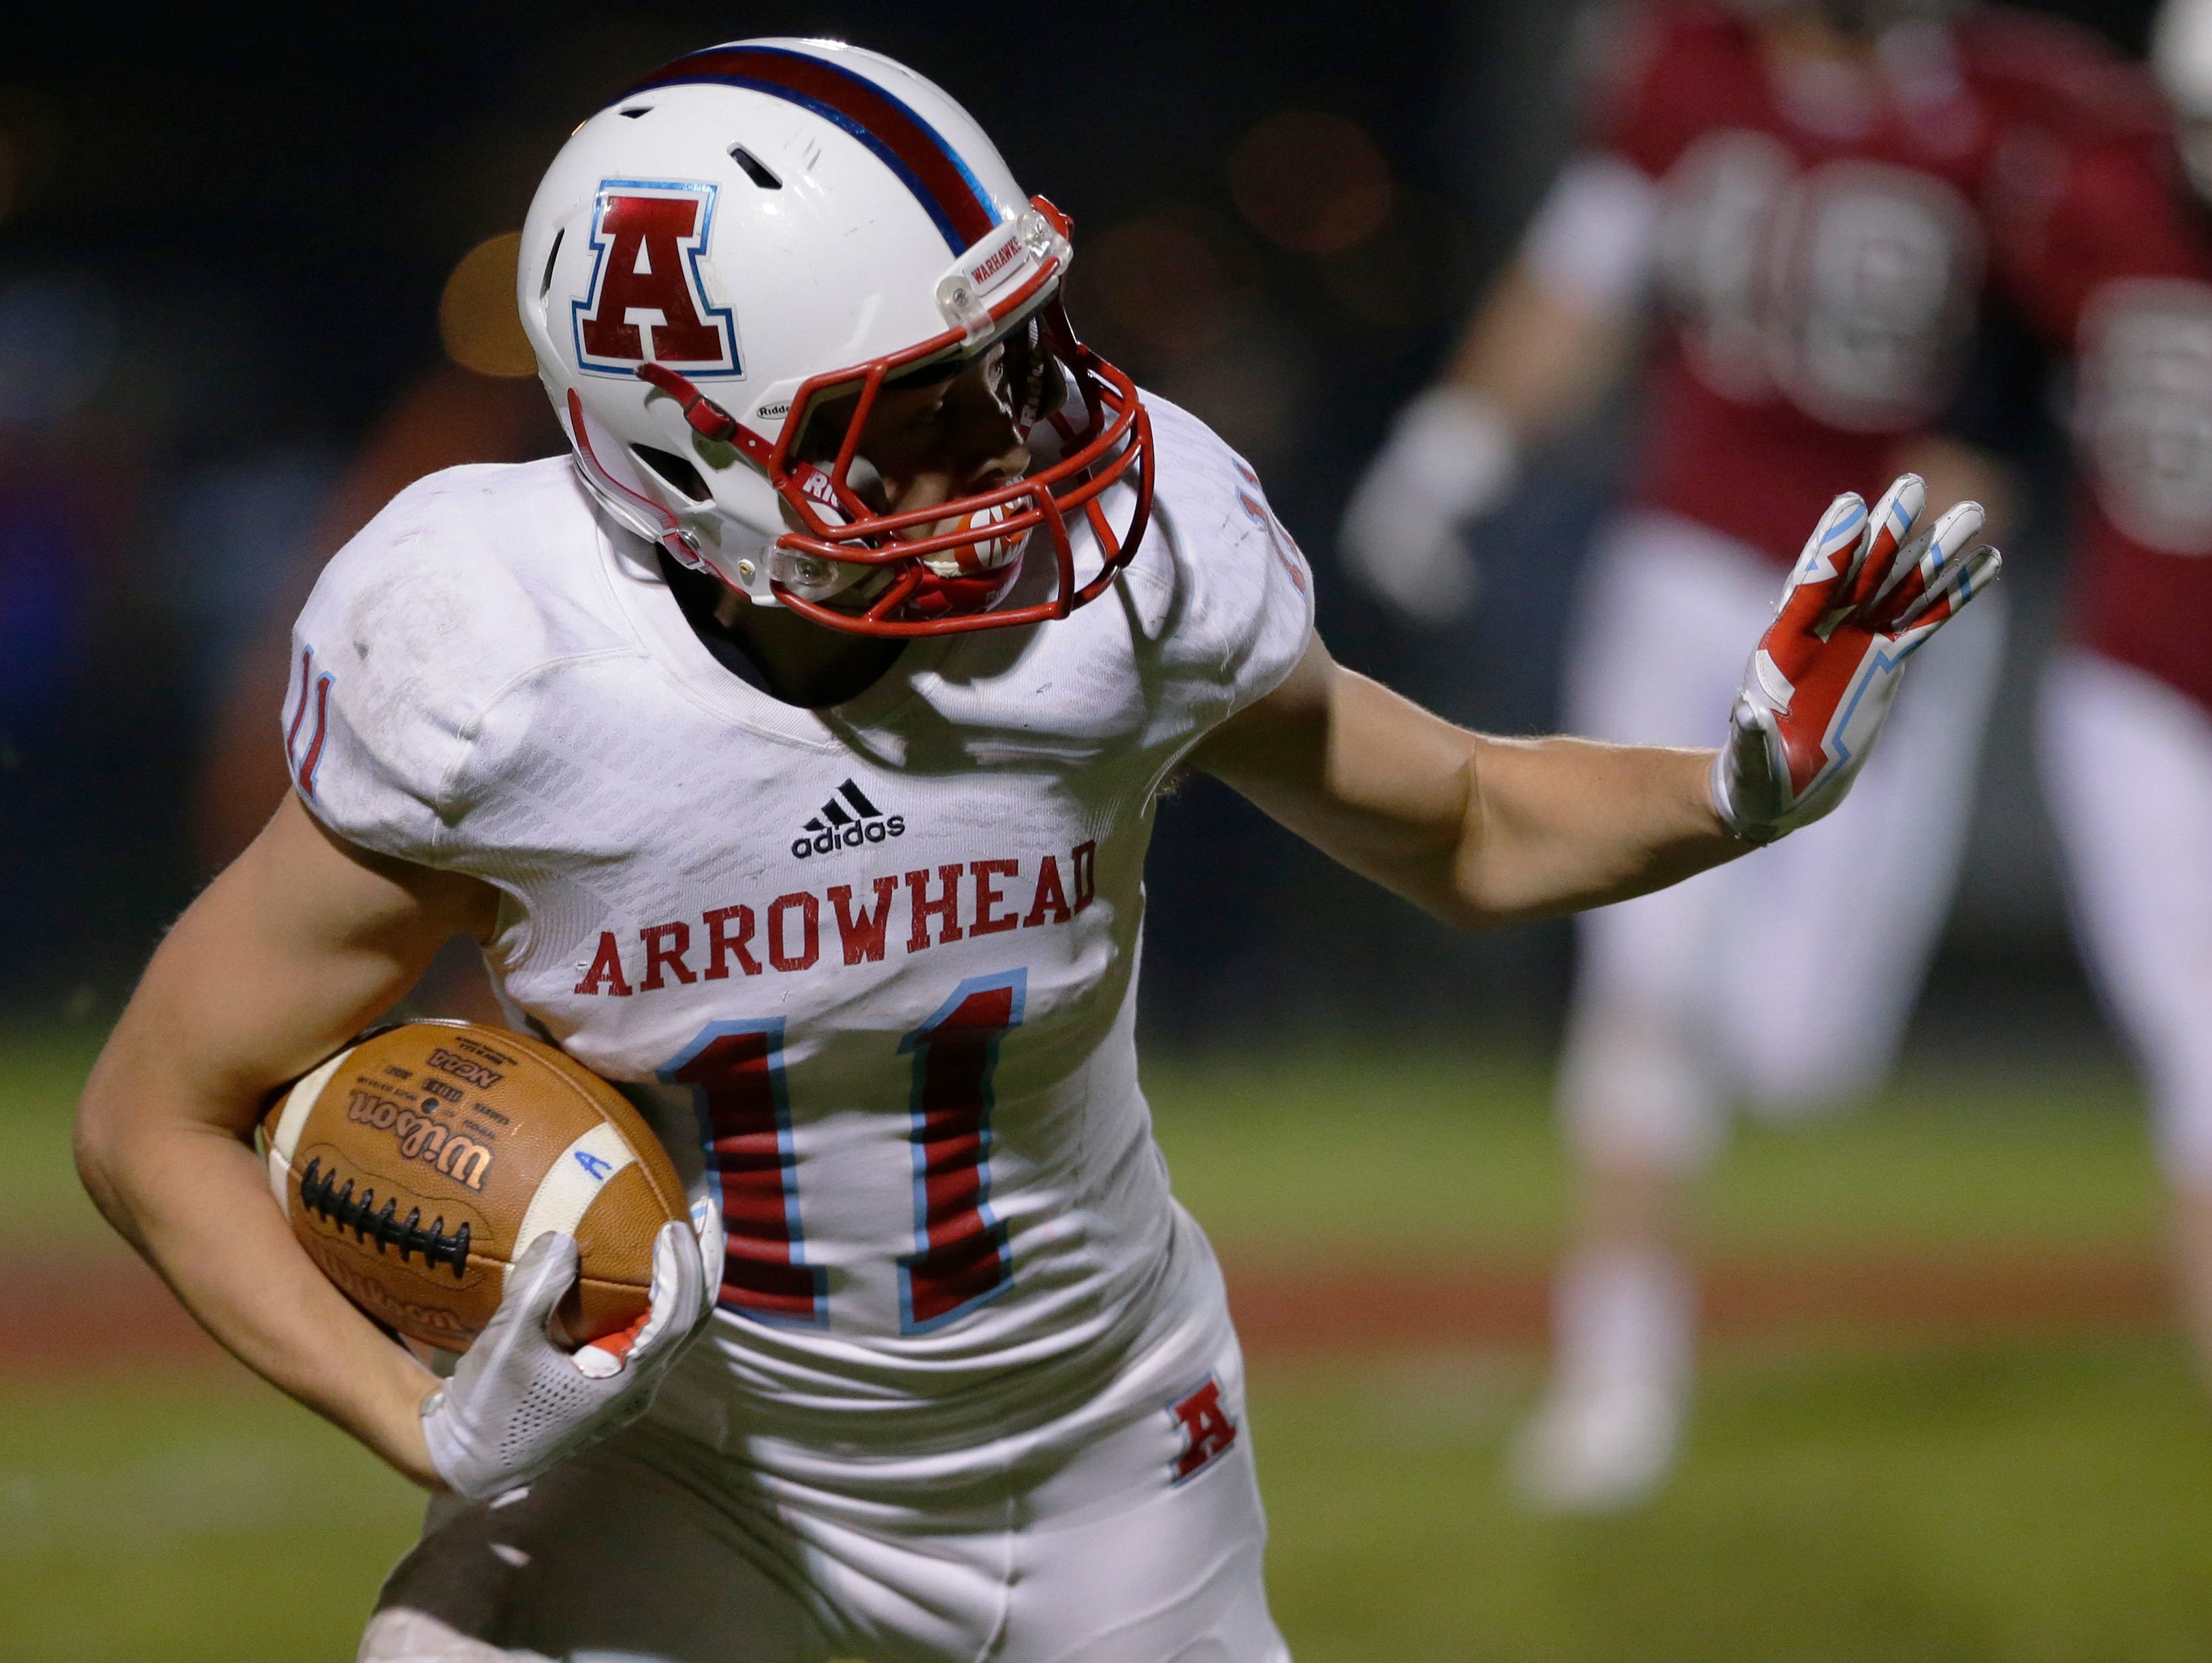 Arrowhead's Jacob Schleicher runs the ball after a punt.  Fond du Lac Cardinals played Arrowhead Warhawks in WIAA football playoff sectionals, Friday, Oct. 26, 2018, at Fruth Field in Fond du Lac.Joe Sienkiewicz/USA Today NETWORK-Wisconsin